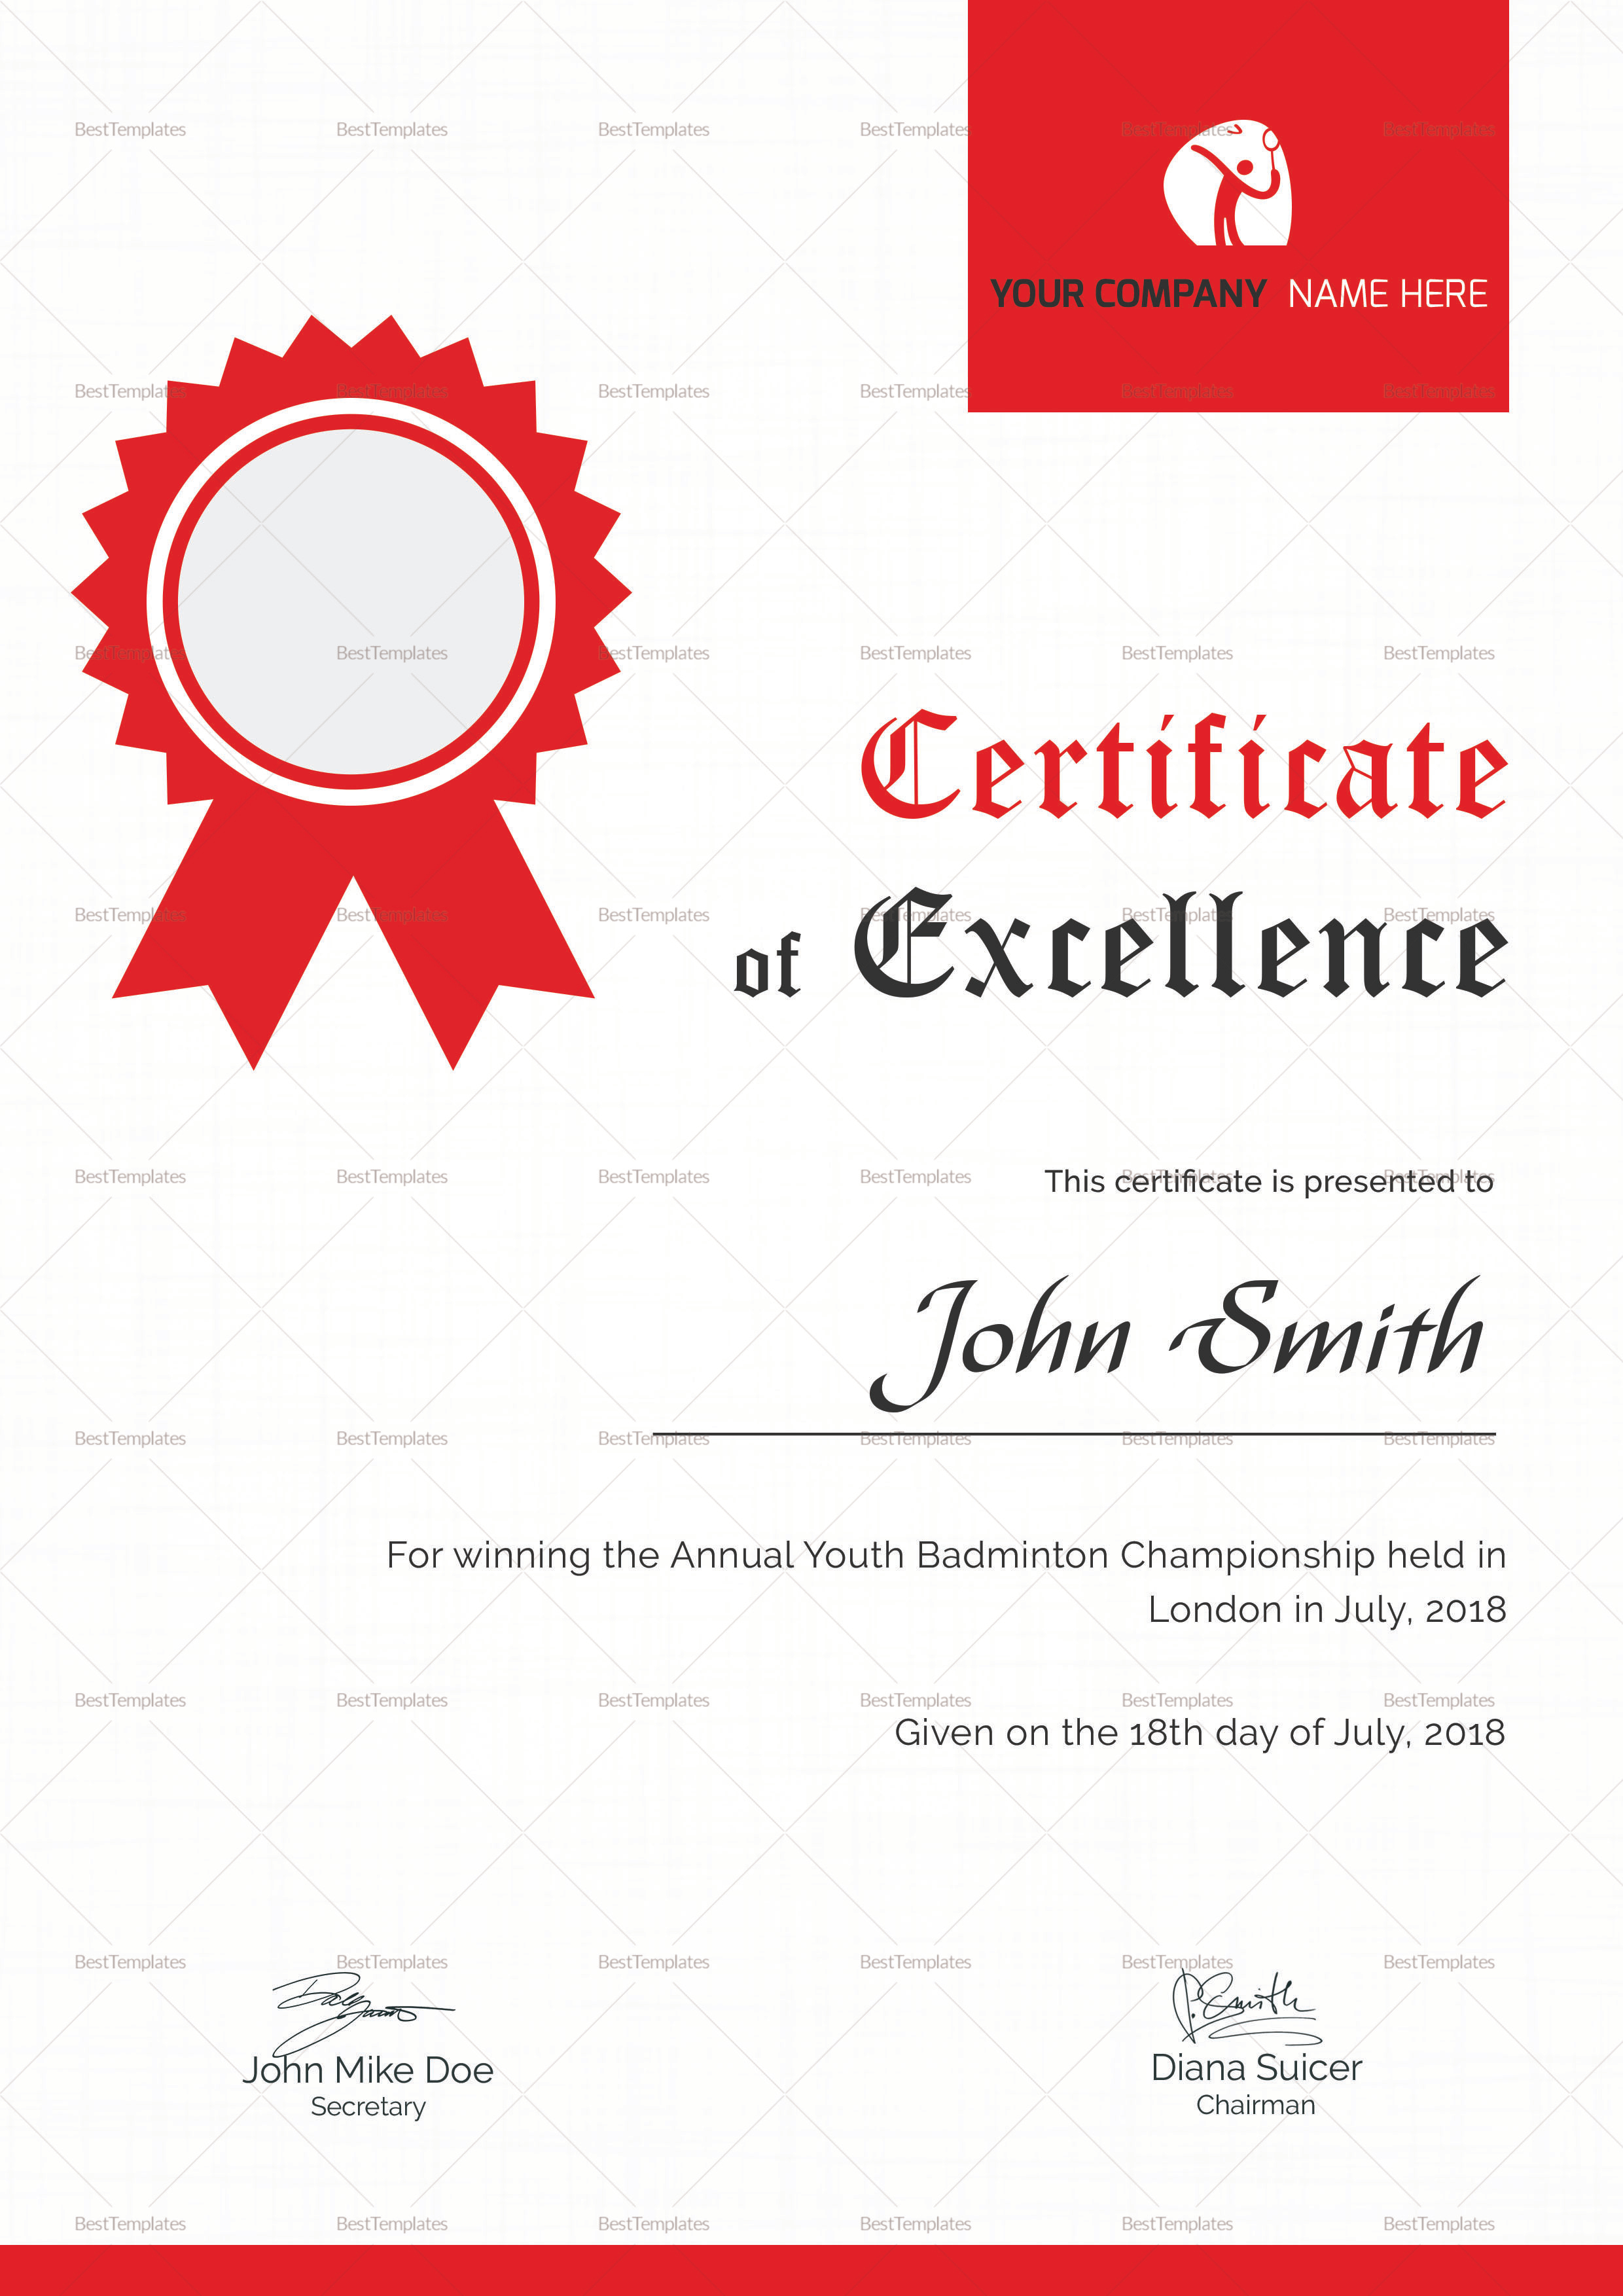 Badminton Excellence Certificate Design Template